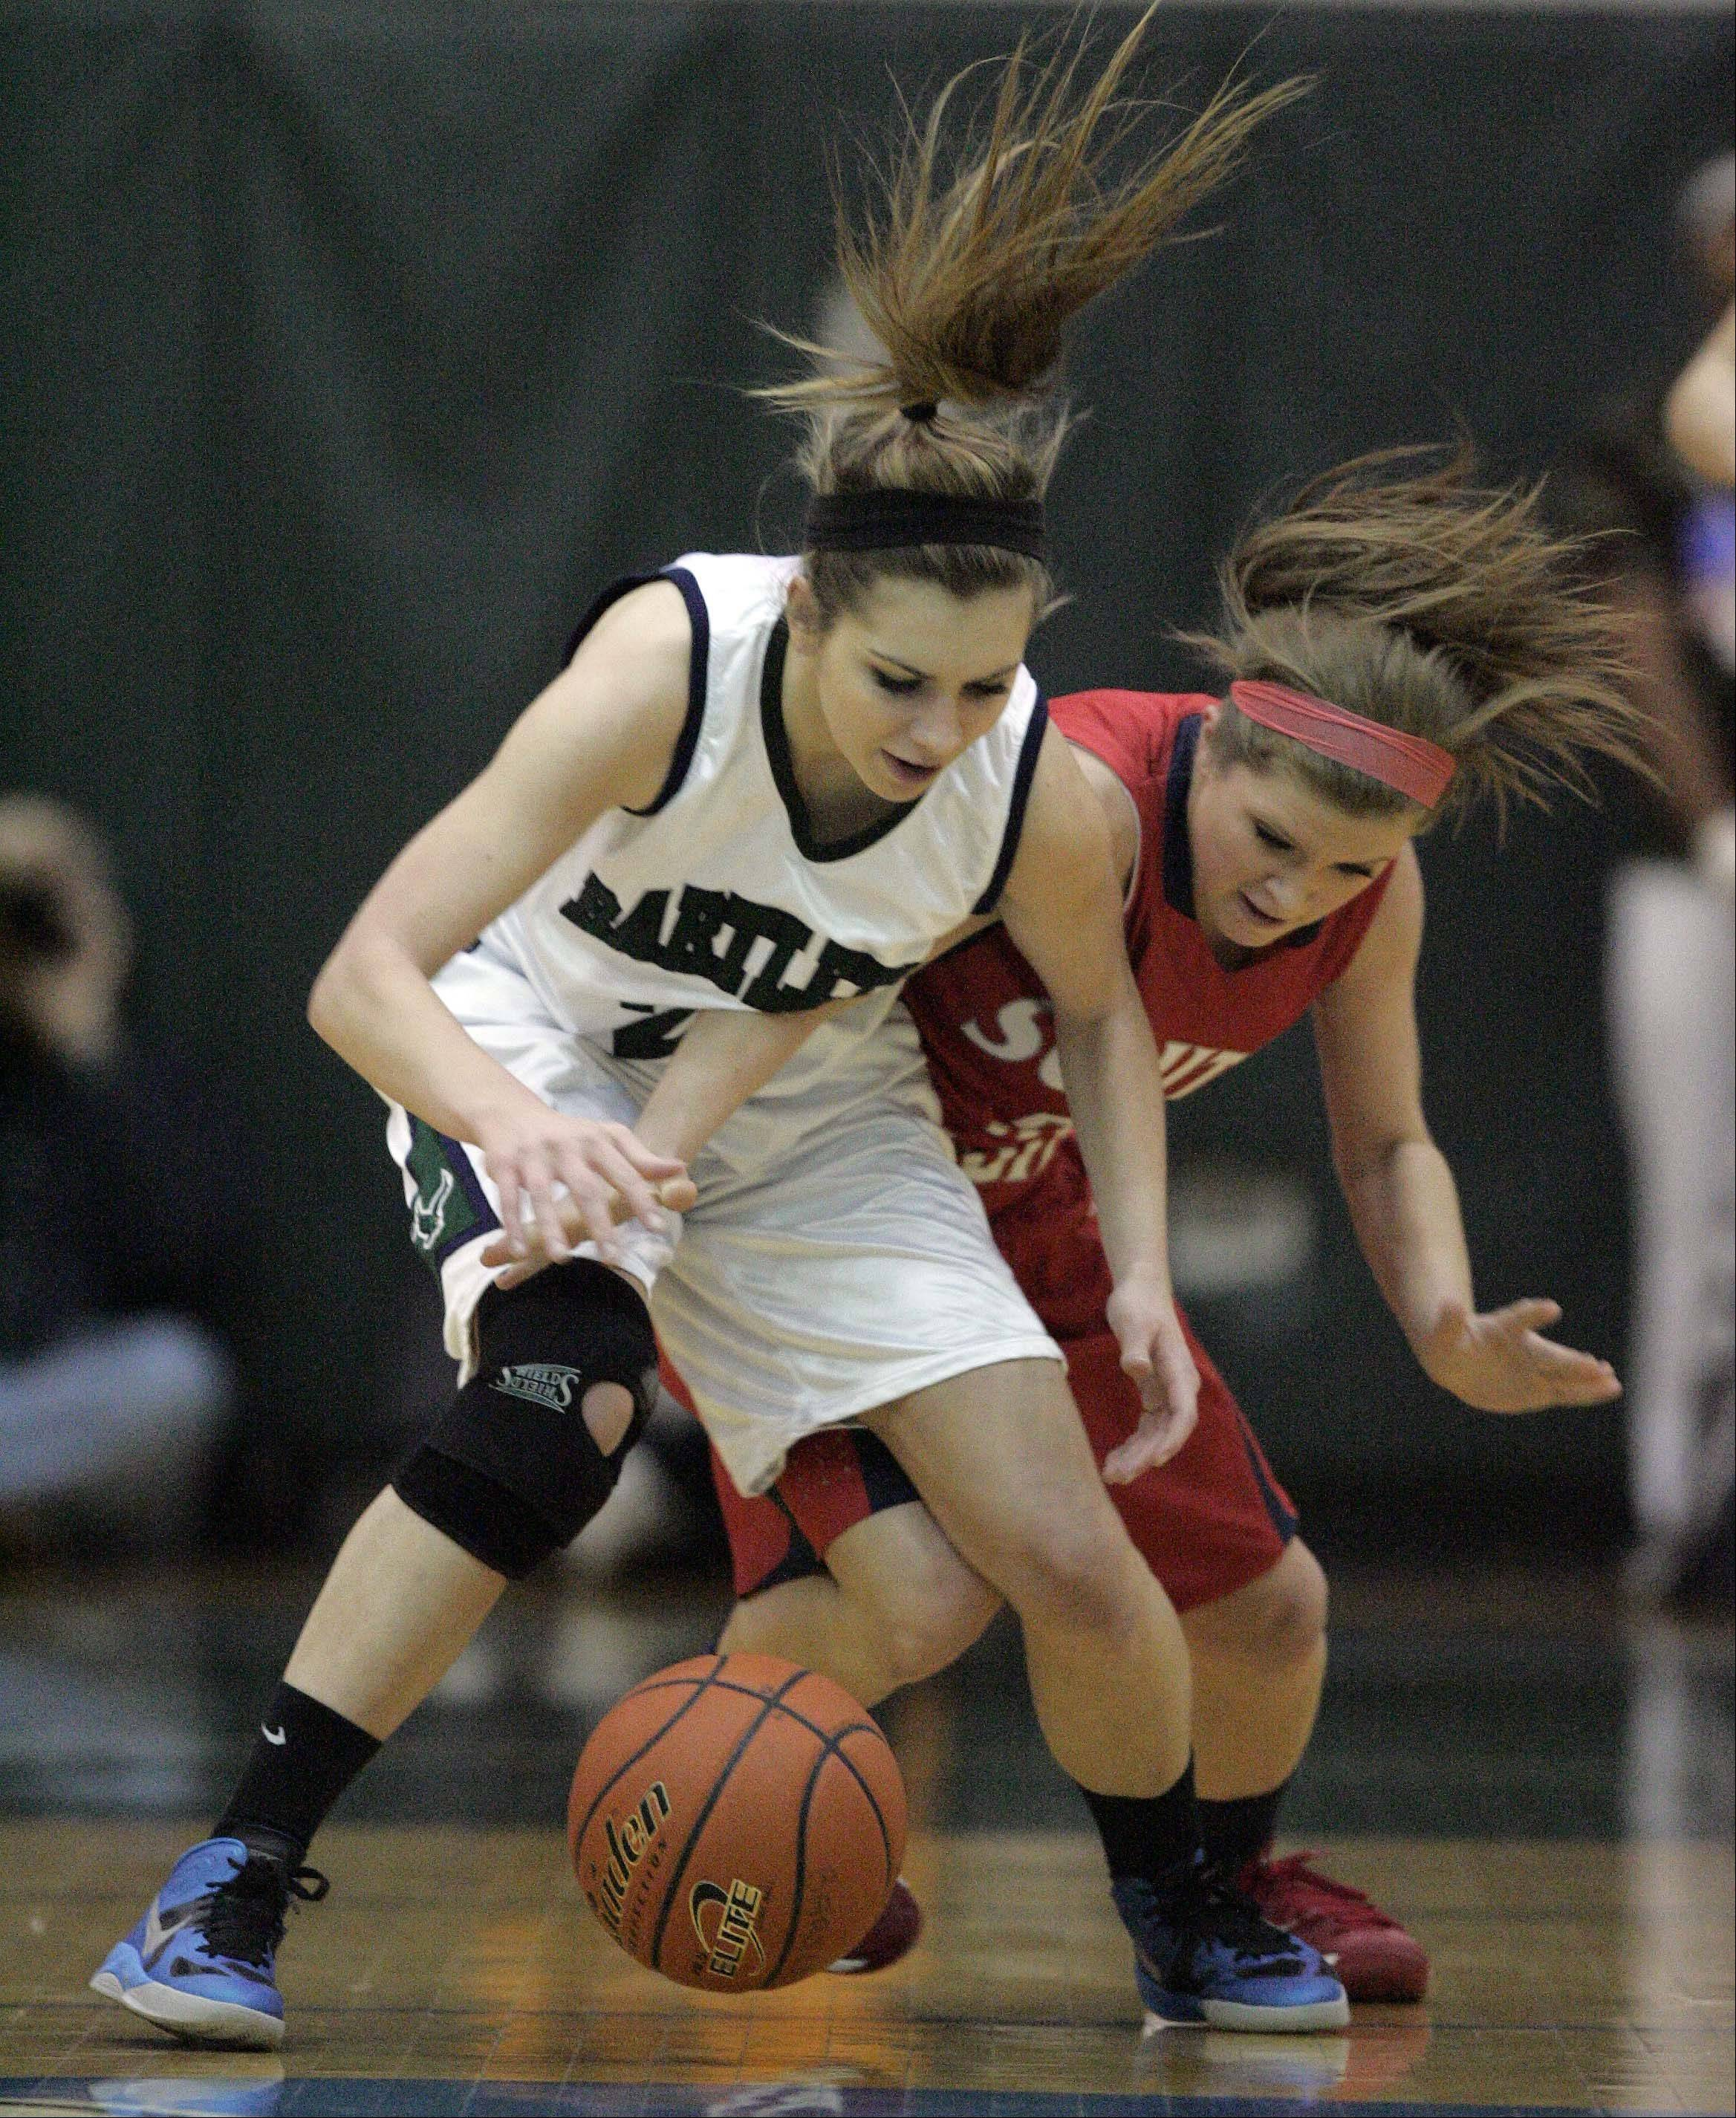 Images: South Elgin vs. Bartlett, girls basketball